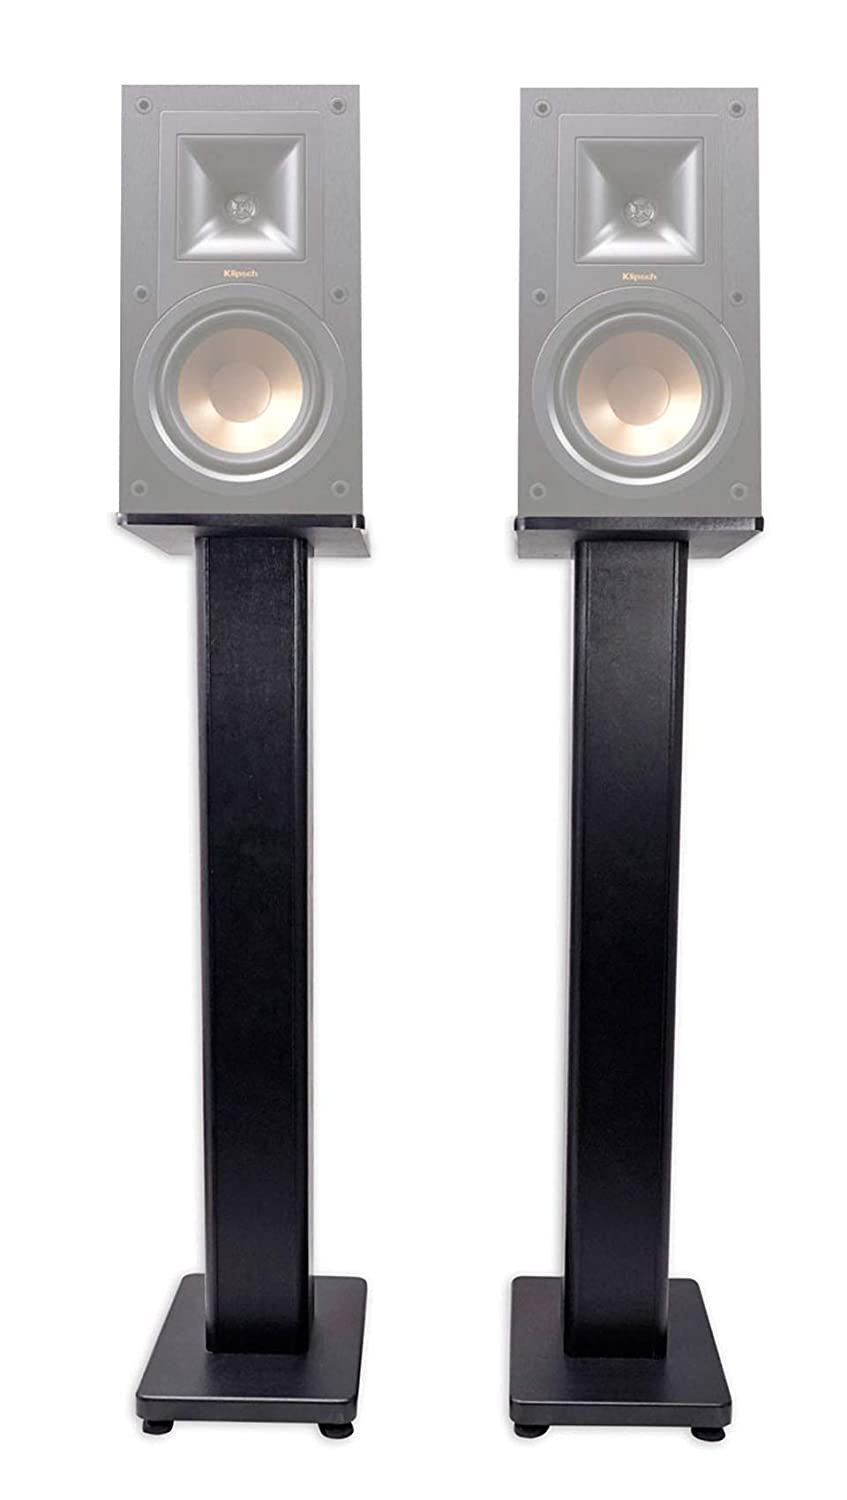 ペアBookshelf Speaker Stands for Klipsch r-15 m本棚スピーカー   B07F9QL3D7